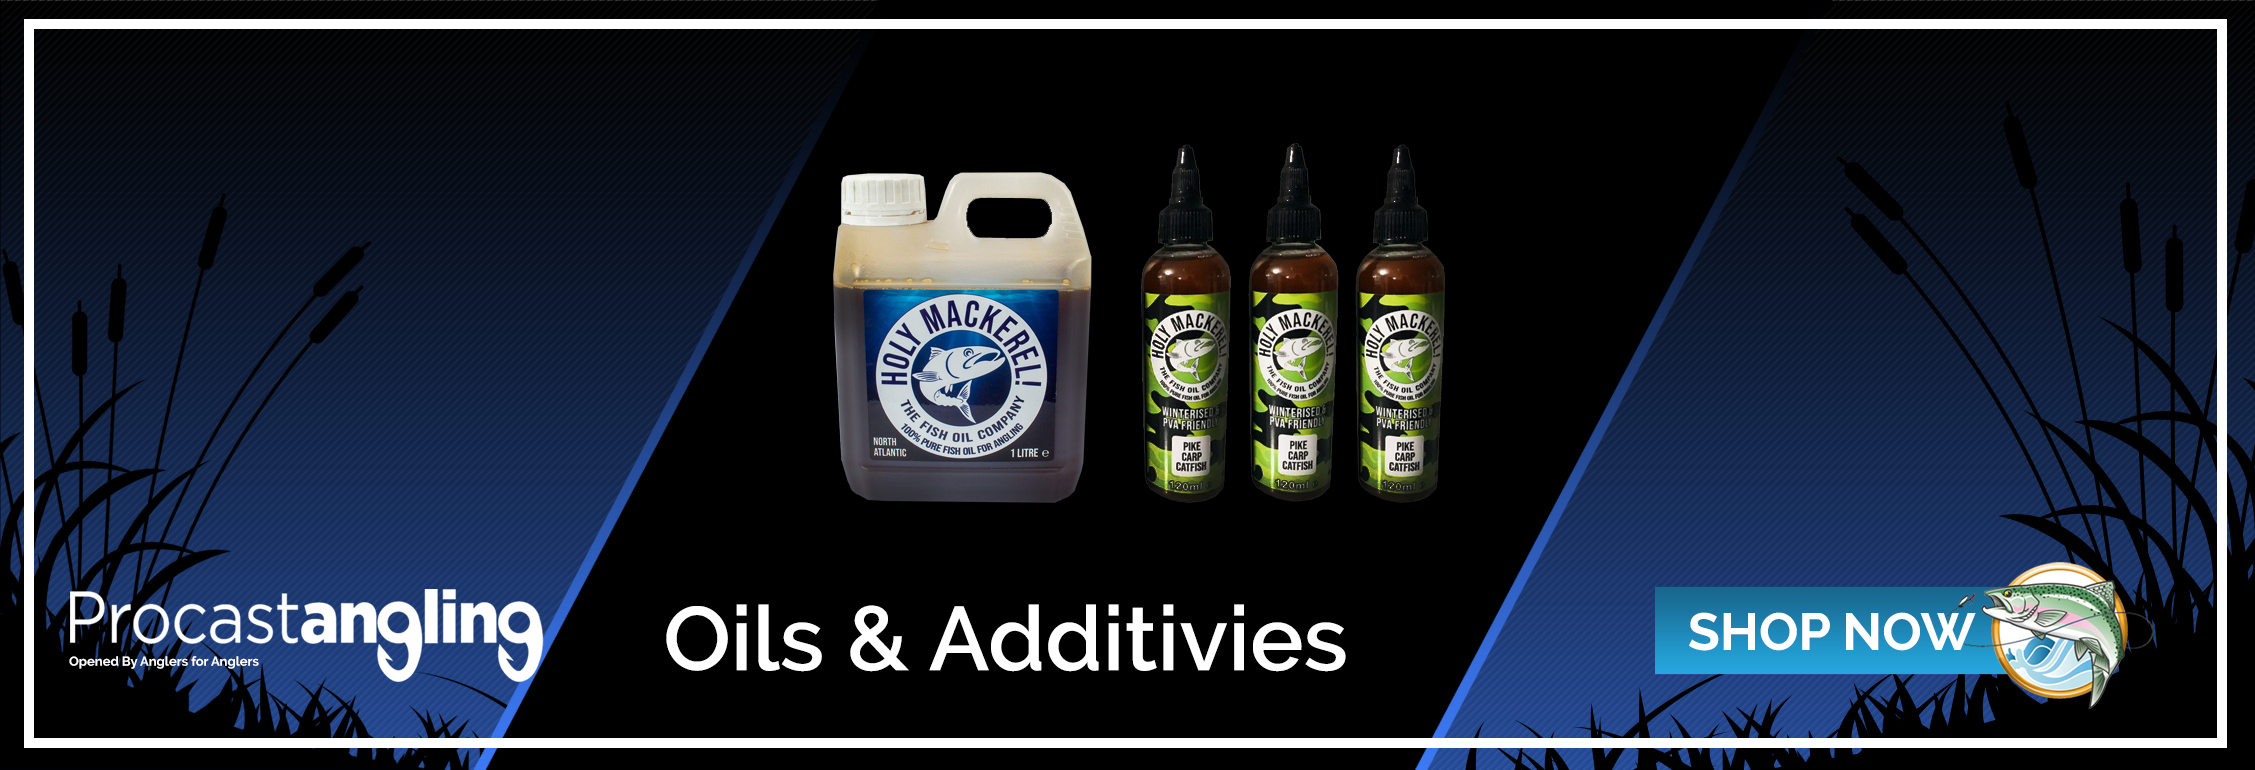 OILS & ADDITIVIES